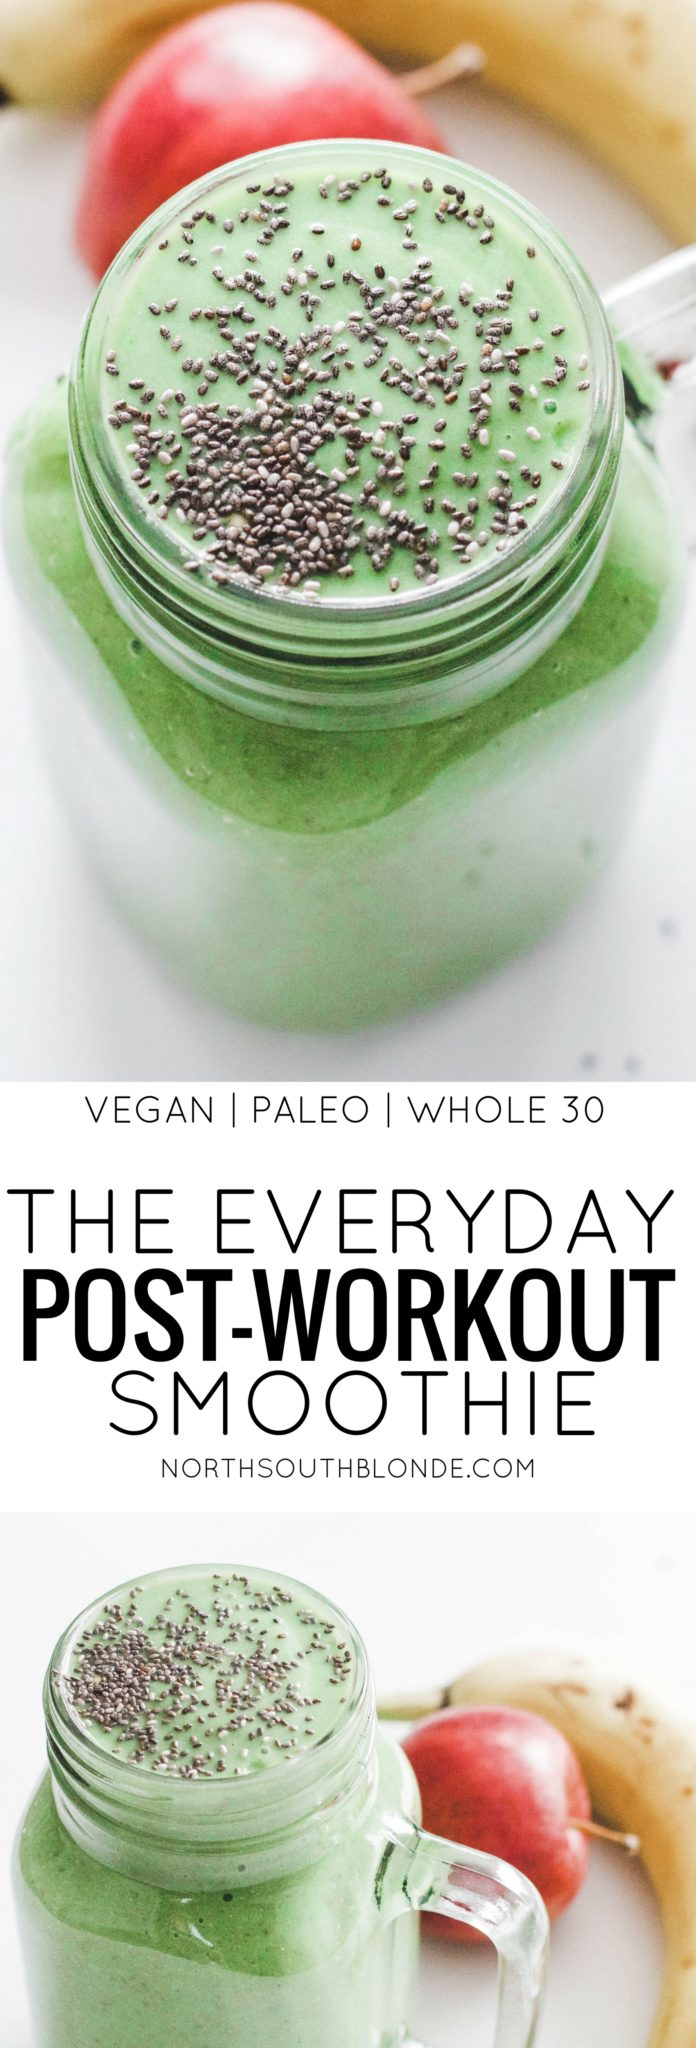 This everyday post-workout smoothie is quick and easy to make on the regular and necessary to better digestion, boost the metabolism, recover after exercise, and aid in weight loss. Green smoothie | Vegan | Whole 30 | Breakfast | Lunch | Meal Replacement | Low carb | Low calorie | Quick and Easy | Fibre | Protein | Fitness | Exercise | Get in Shape | Get Fit | Loose Weight | Detox | Cleanse | Healthy | Nutrition | Good for you | Post Workout | Morning smoothie | Paleo | Super Food | Recovery |